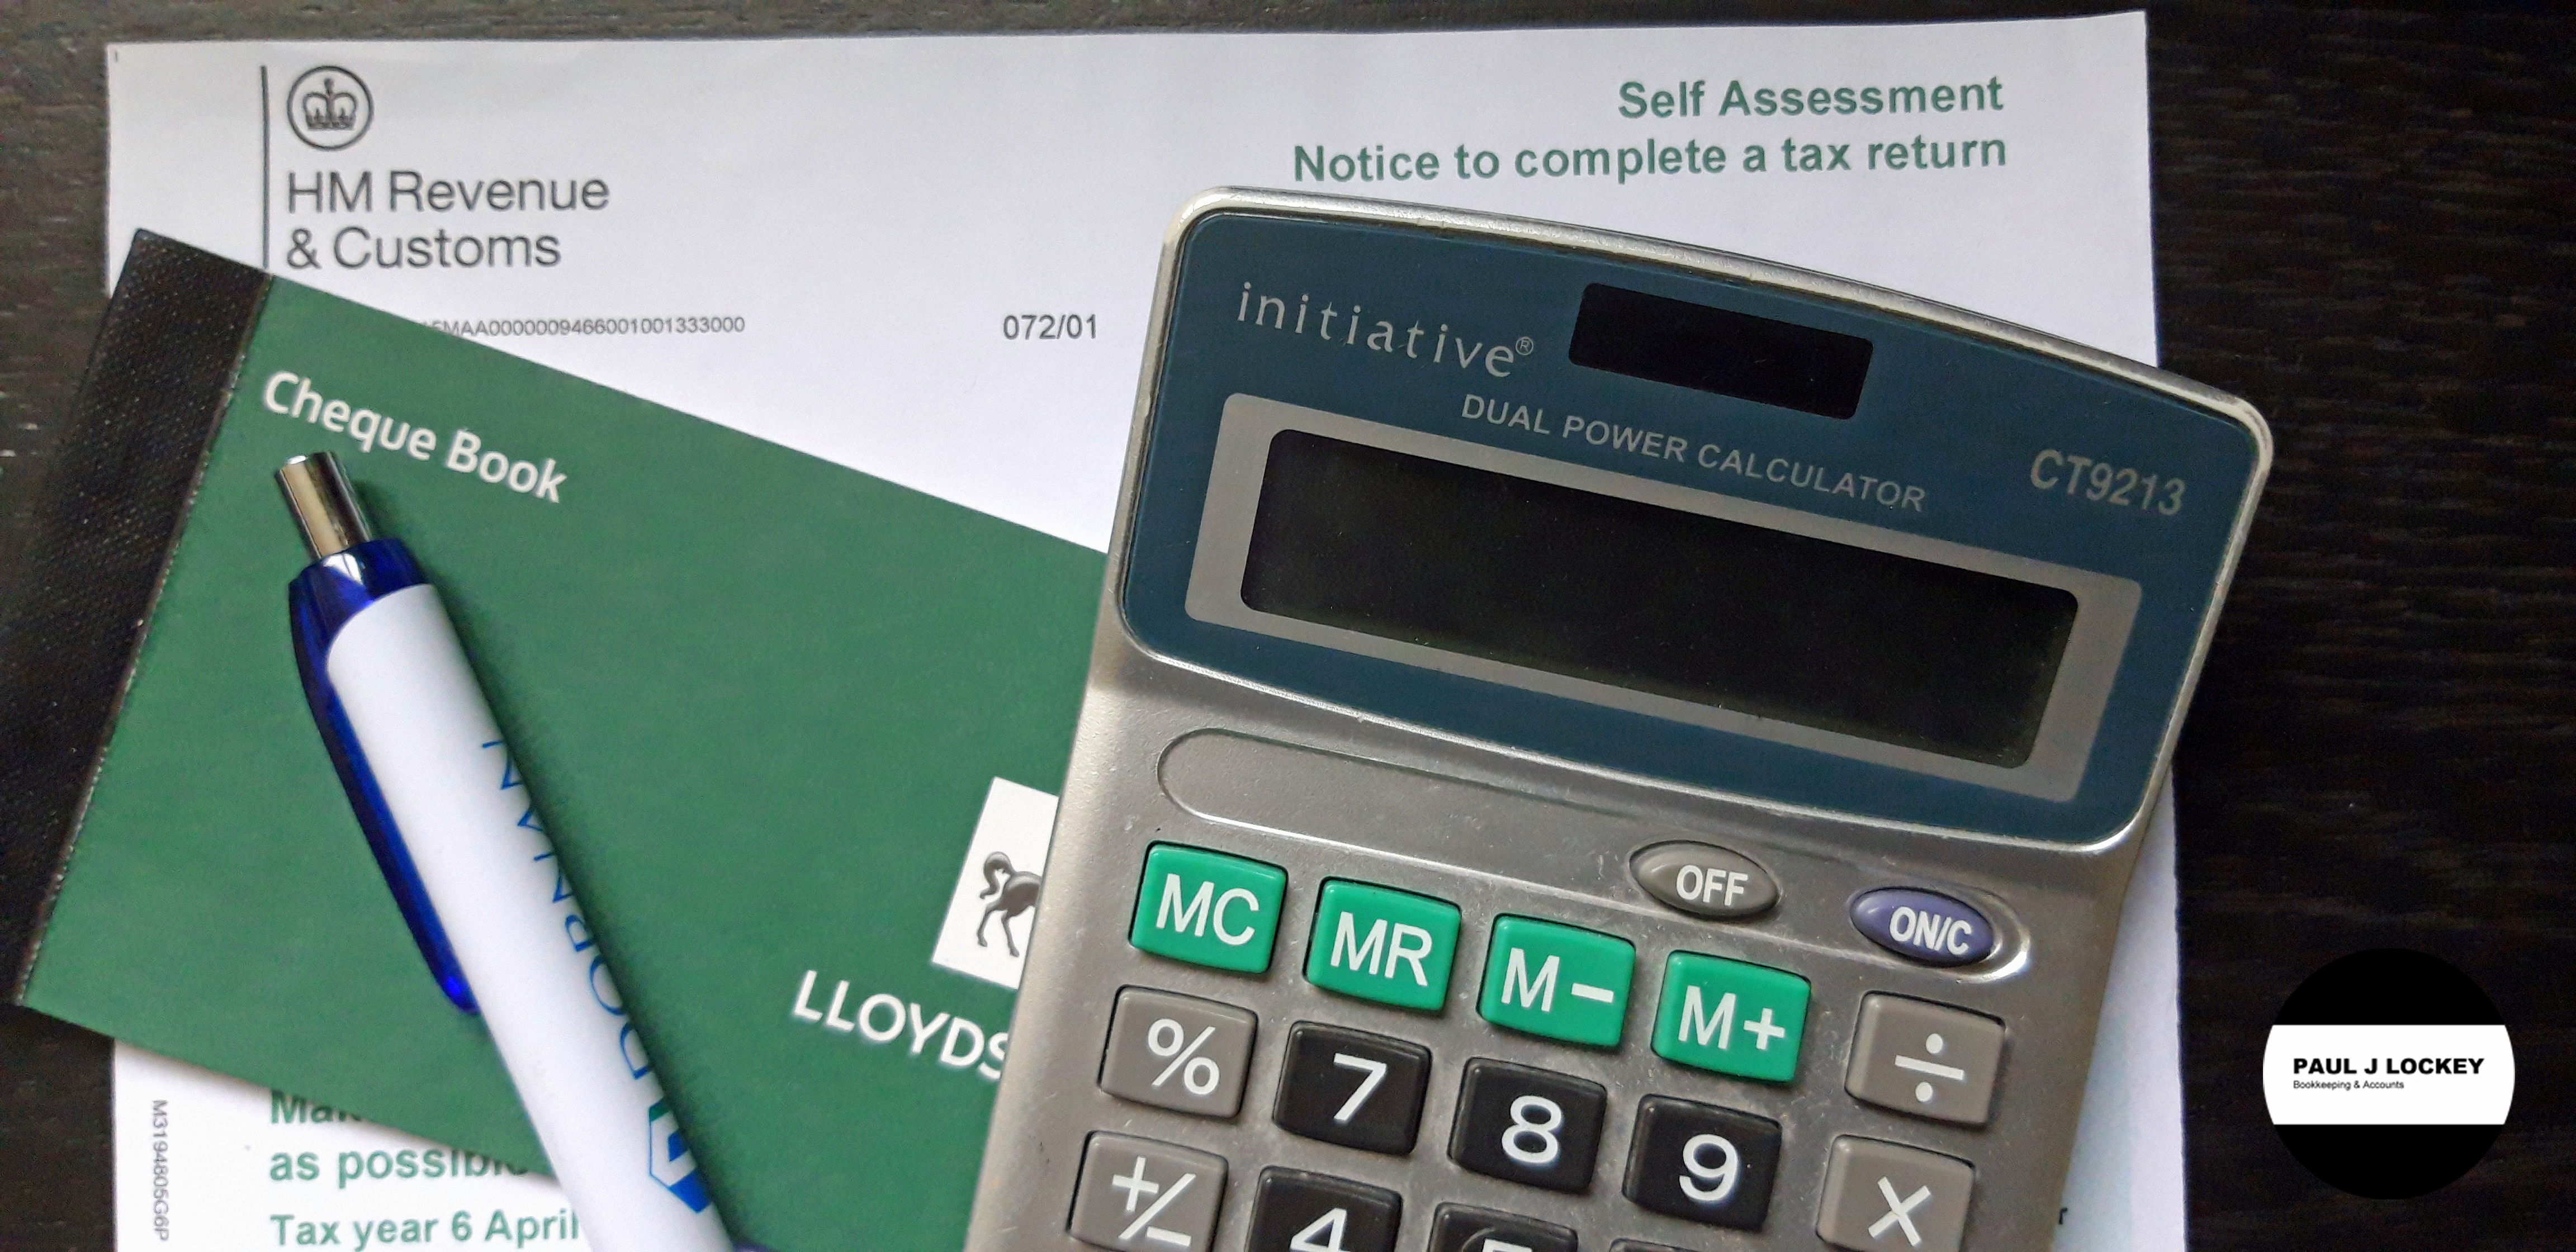 Notice to complete a Self Assessment Tax Return